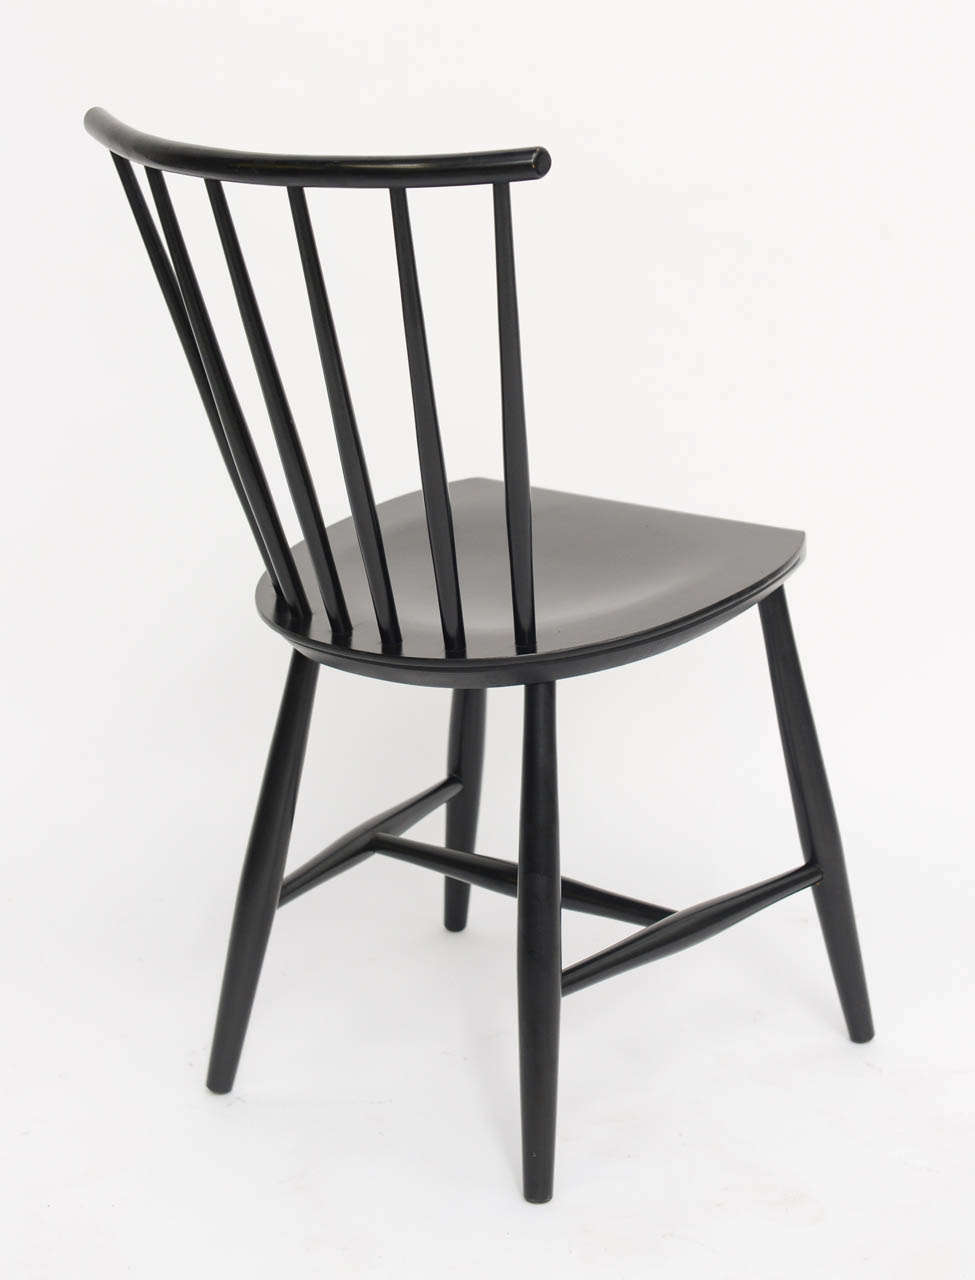 Four 1950s Swedish Windsor Style Spindle Back Dining Chairs For Sale 3